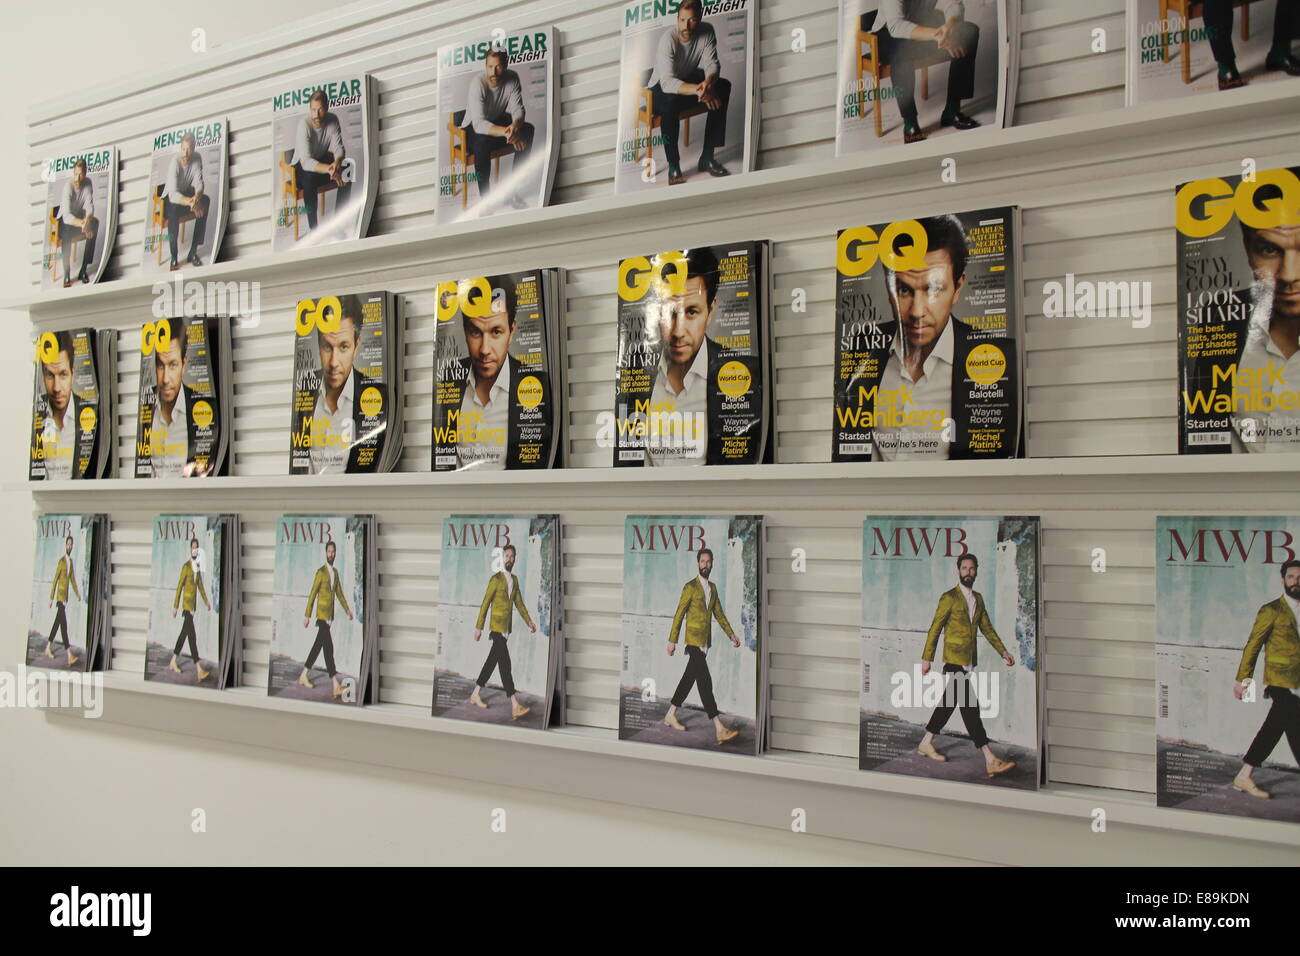 Copies of GQ, MWR and Menswear Fashion Magazines on a shelf at London Fashion week - Stock Image